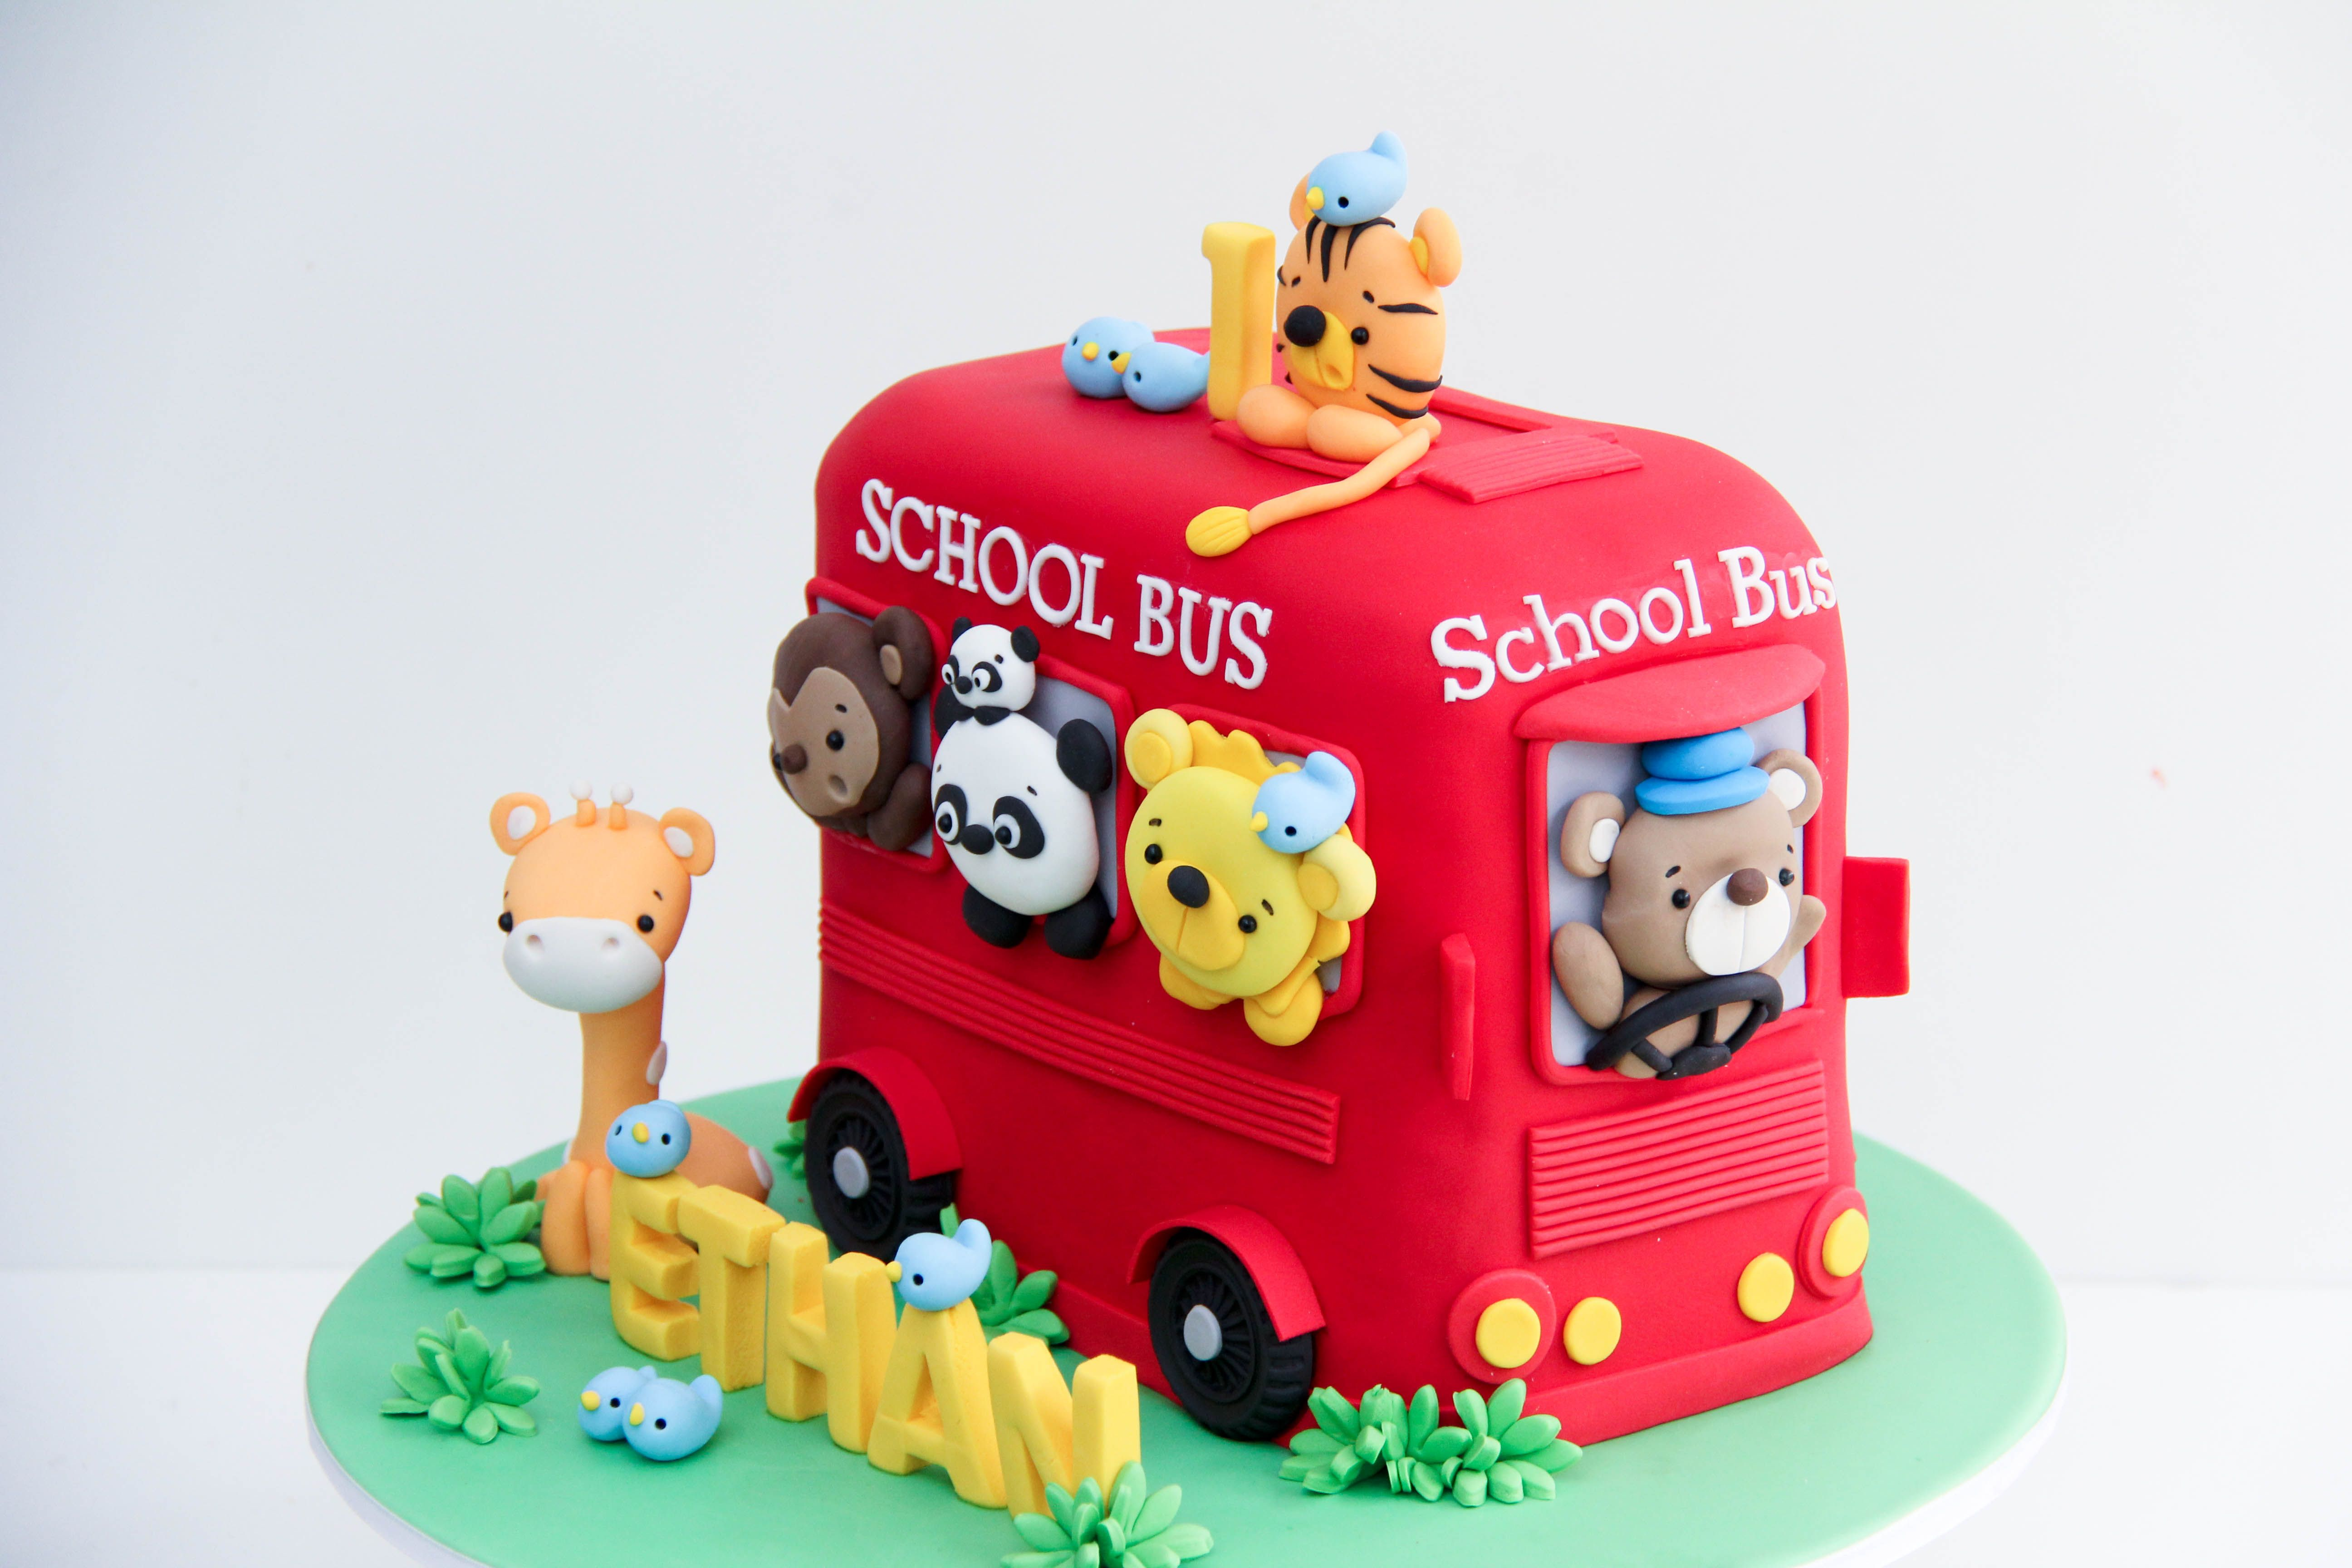 Animal School Bus Birthday Cake Bus Birthday Cakes Bus Birthday